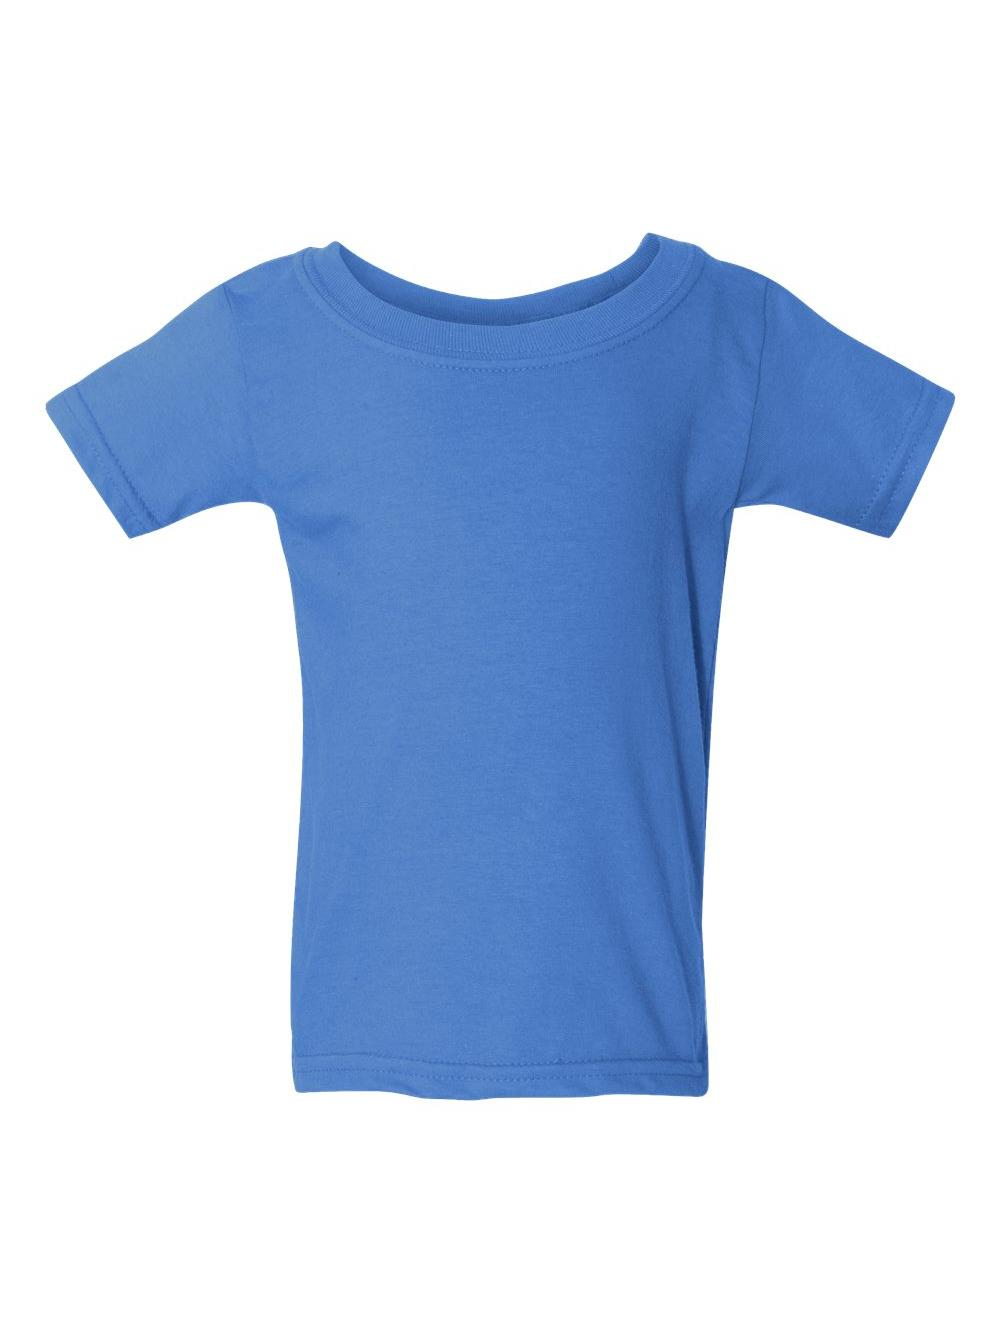 T-Shirts Softstyle Toddler Tee